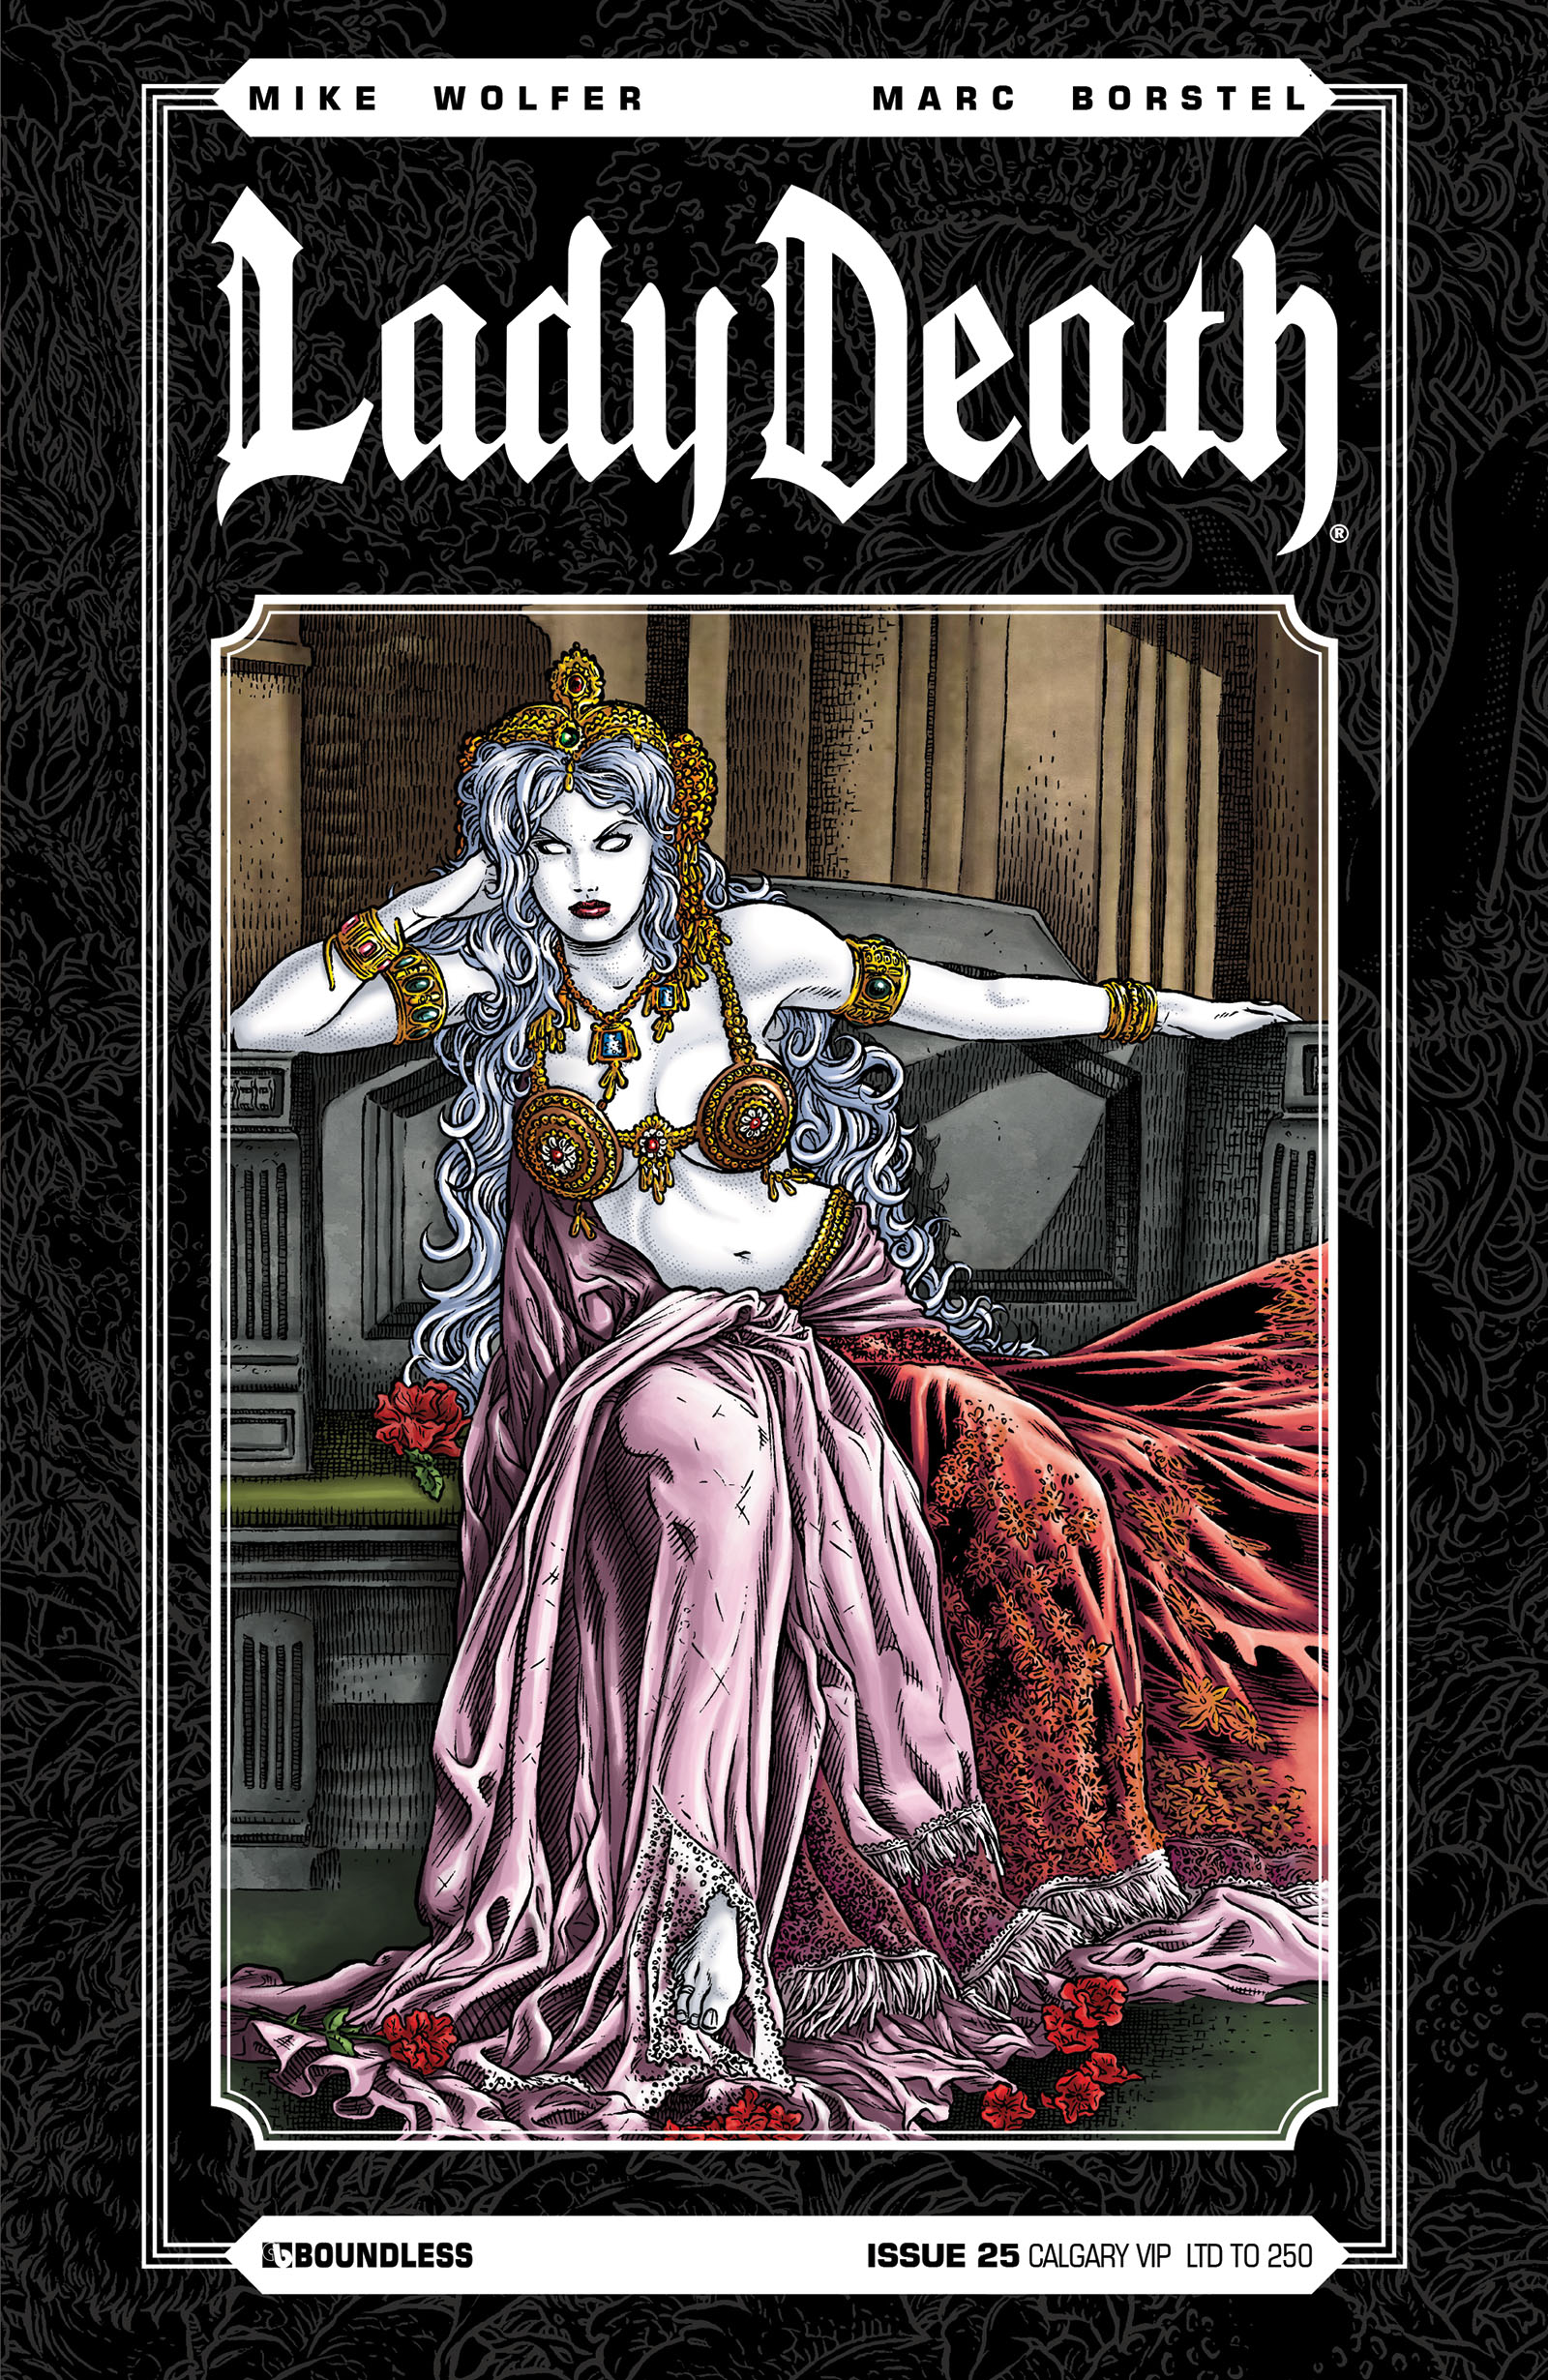 LADY DEATH (ONGOING) #25 CALGARY VIP CVR